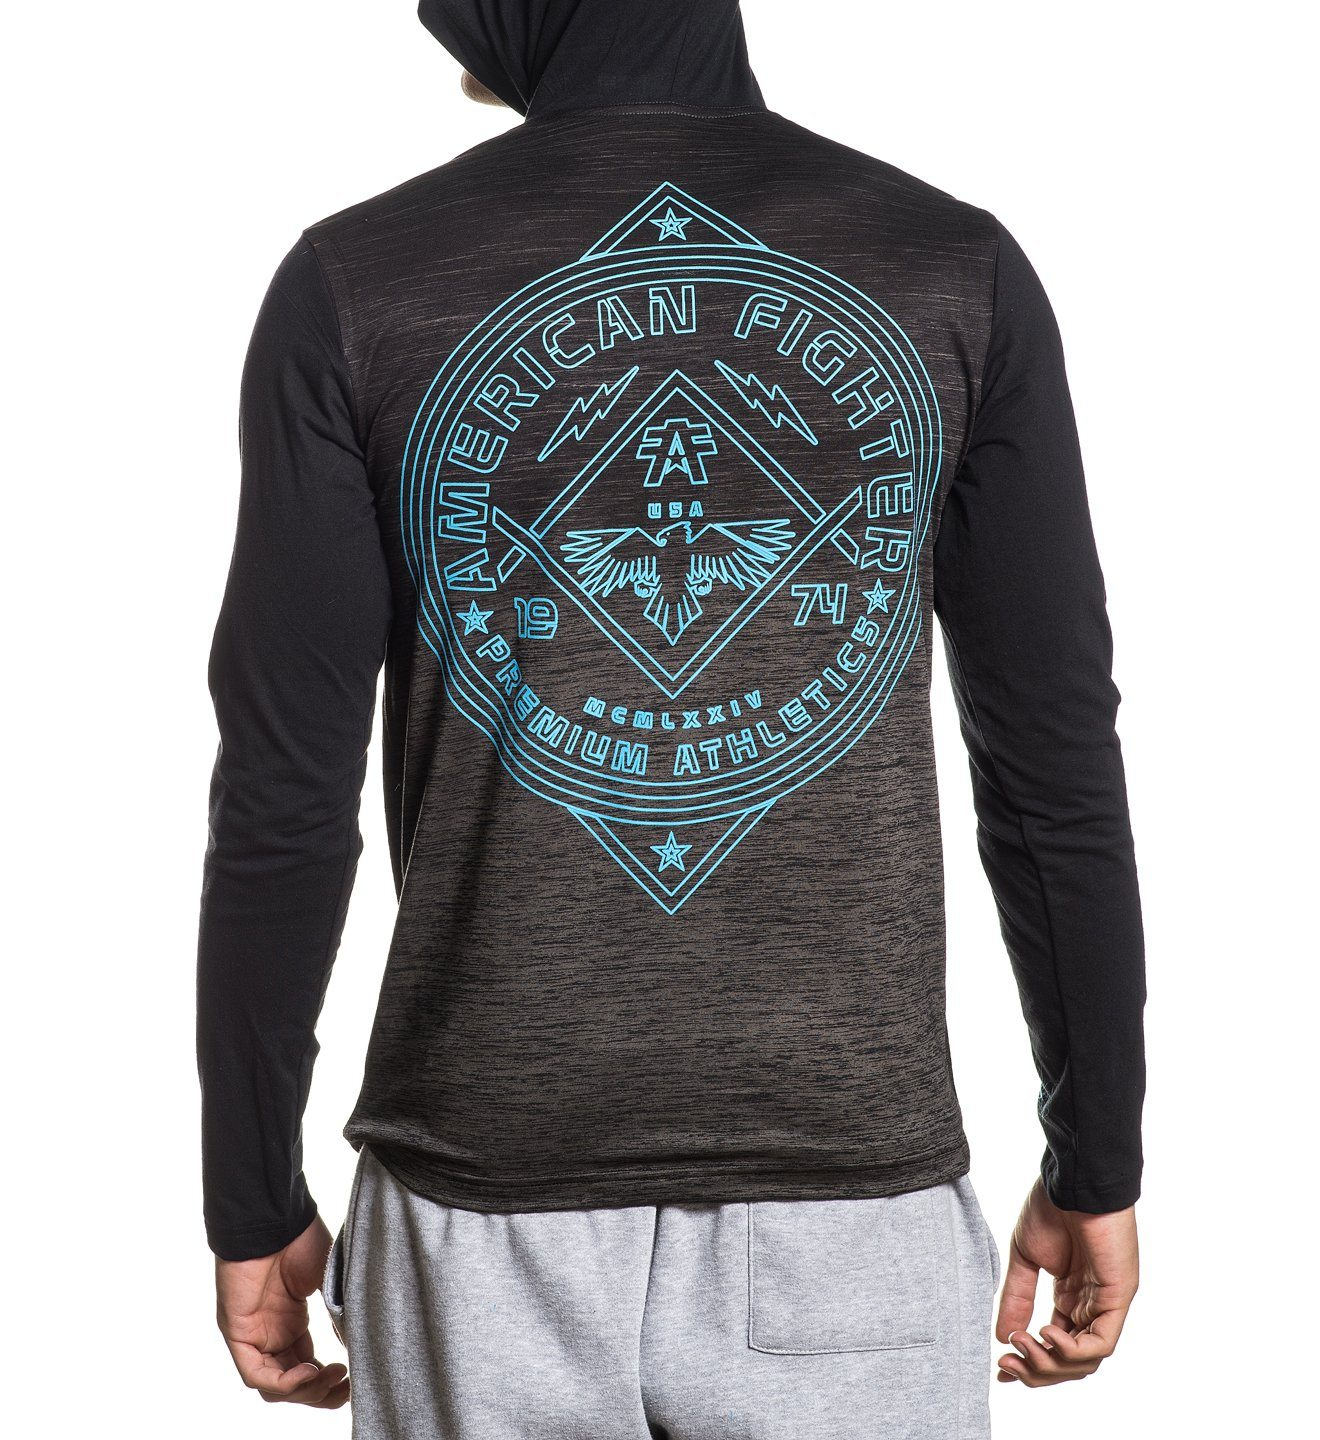 Galveston - Mens Hooded Sweatshirts - American Fighter